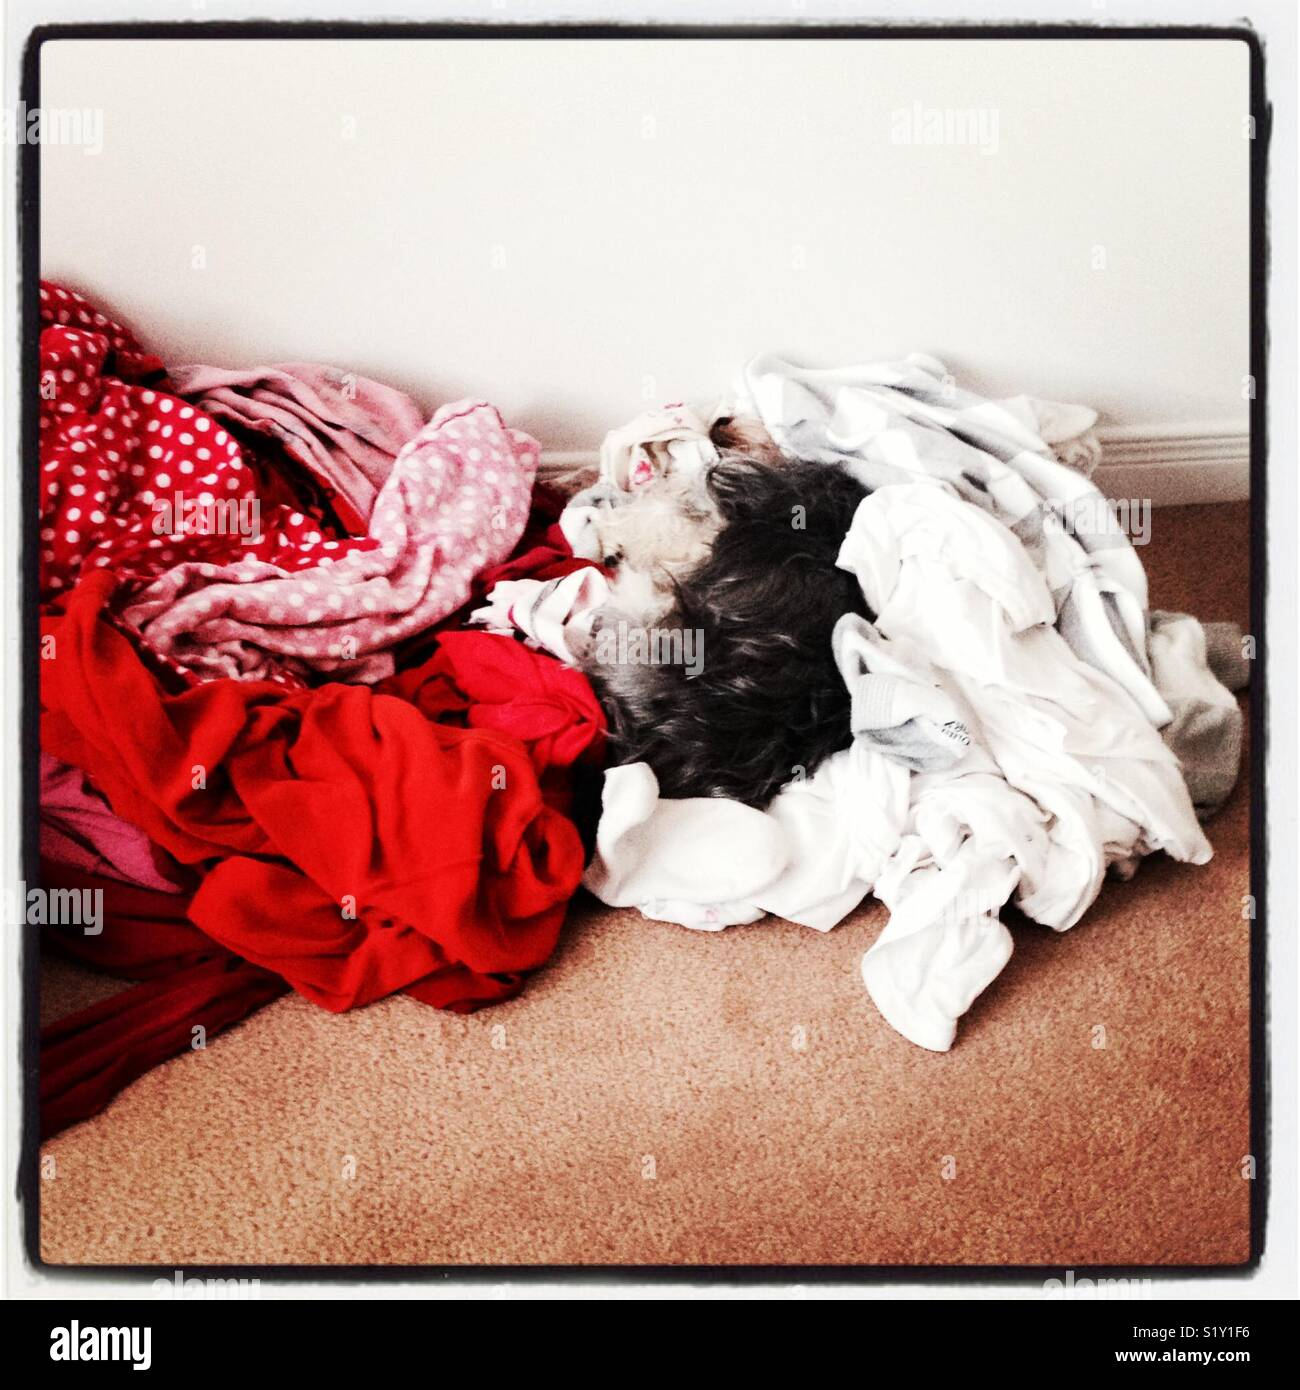 Dog sleeping in the white dirty laundry - Stock Image